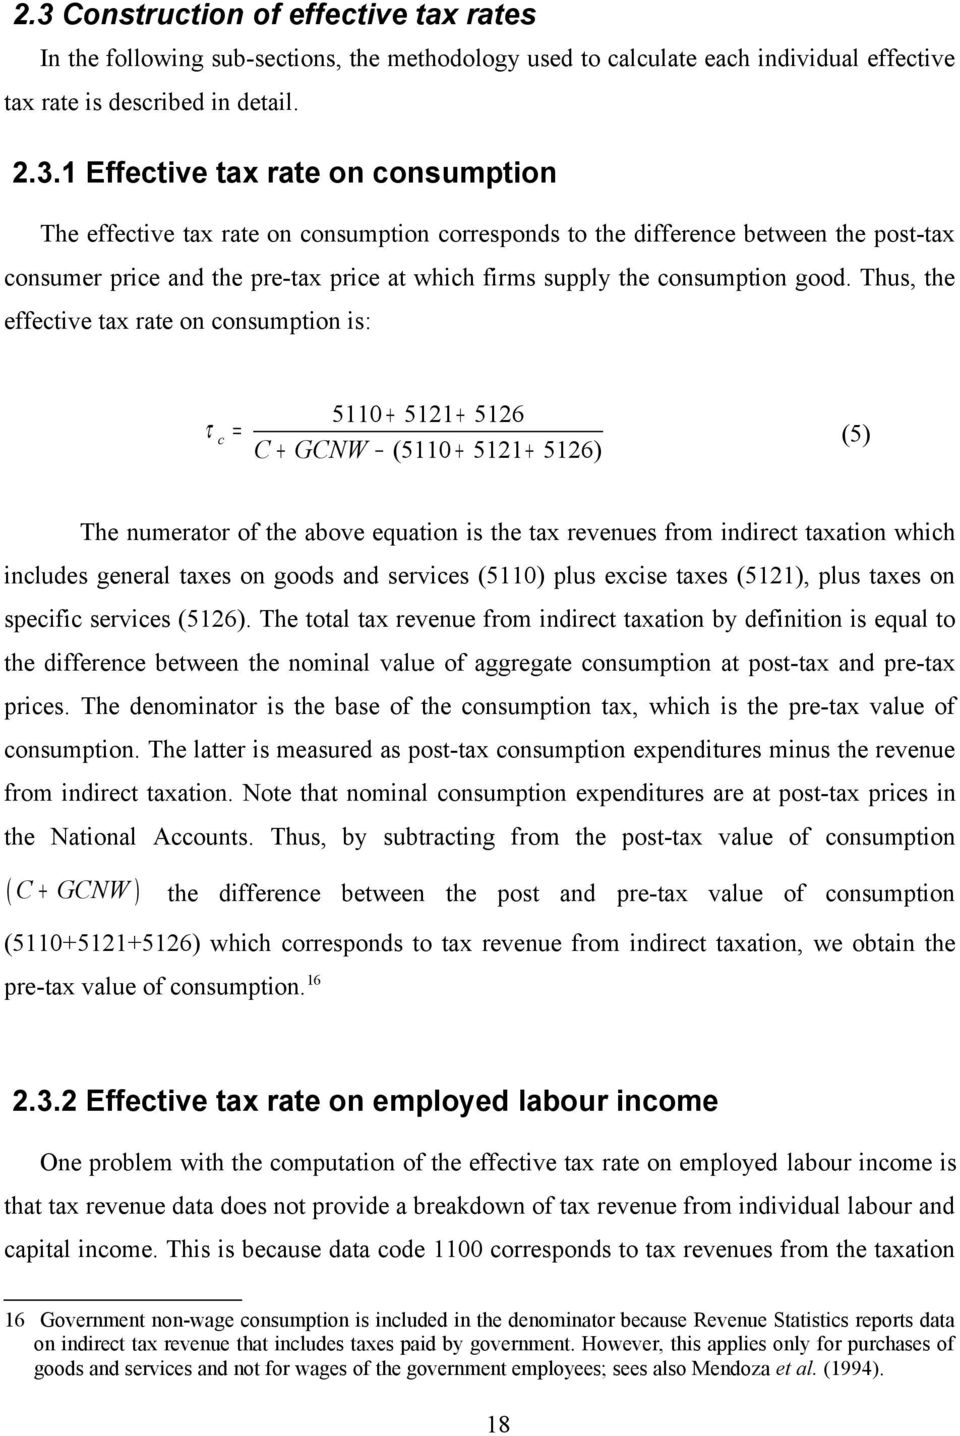 Thus, the effective tax rate on consumption is: τ c = 5110 + 5121+ 5126 C + GCNW (5110 + 5121 + 5126) (5) The numerator of the above equation is the tax revenues from indirect taxation which includes